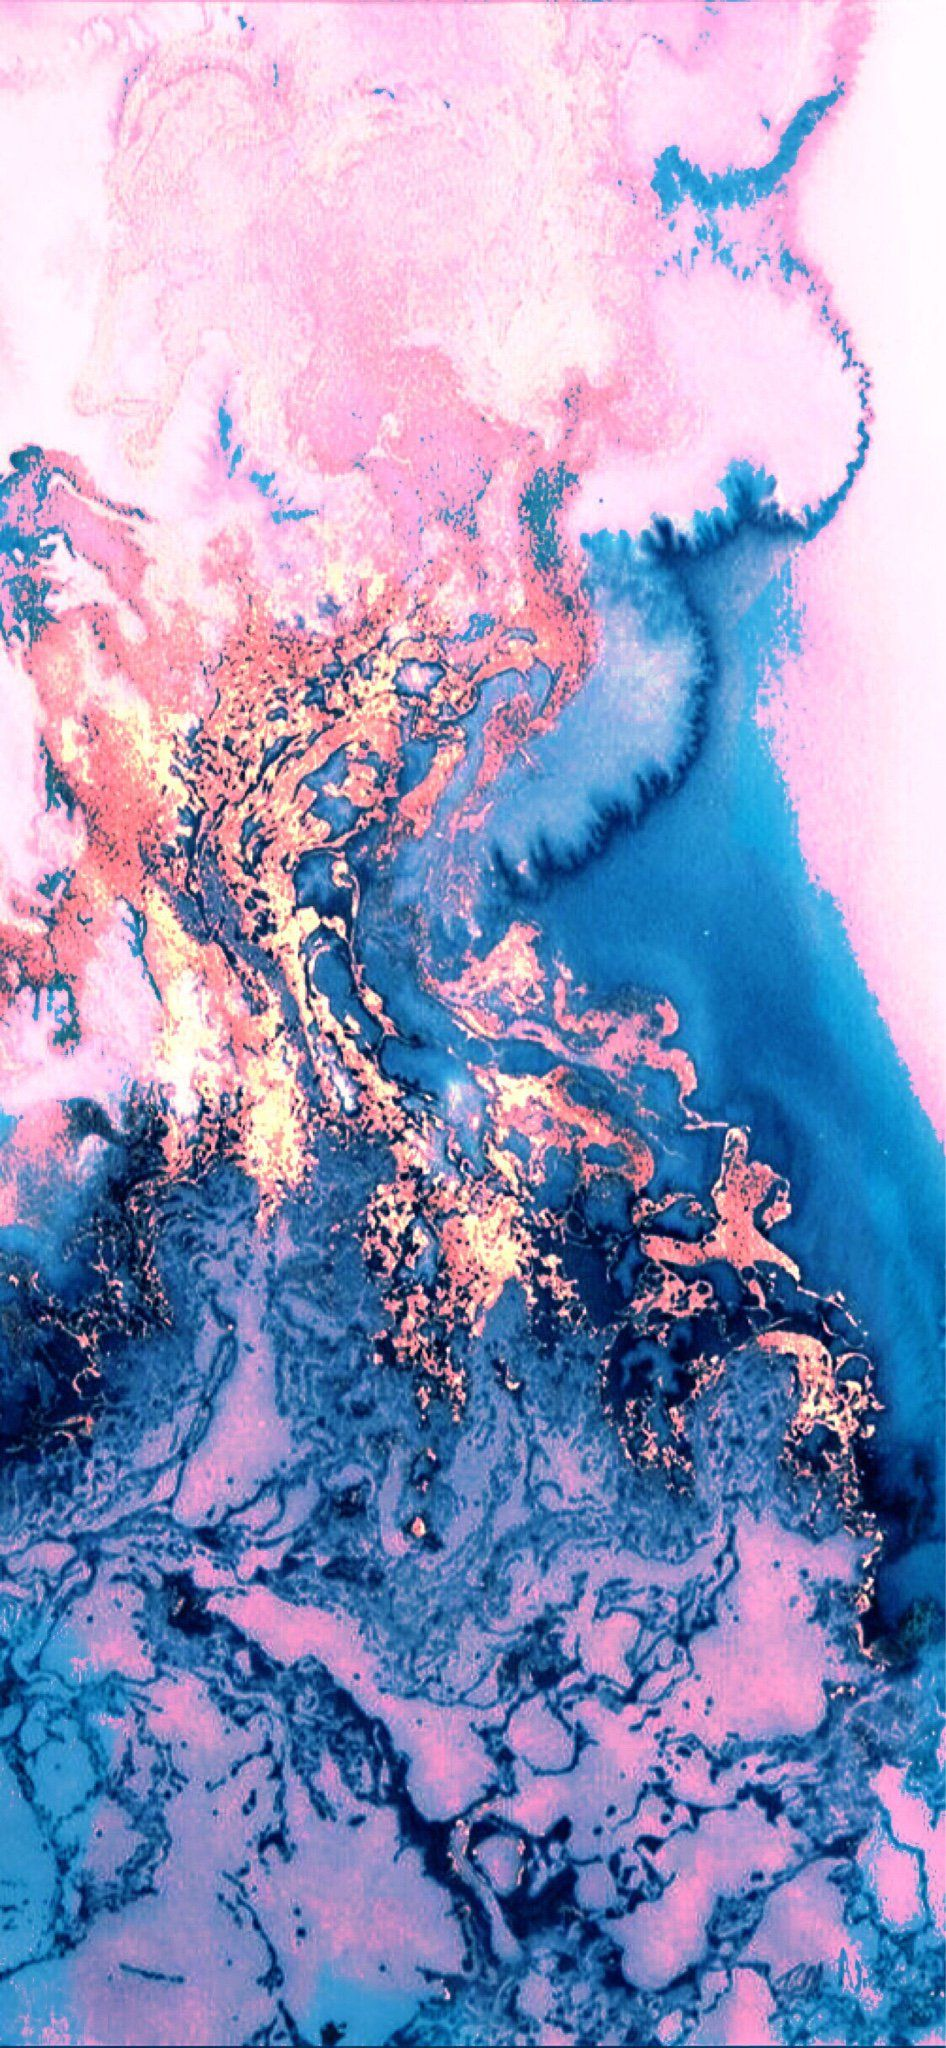 wallpaper Marble wallpaper phone, Bright wallpaper